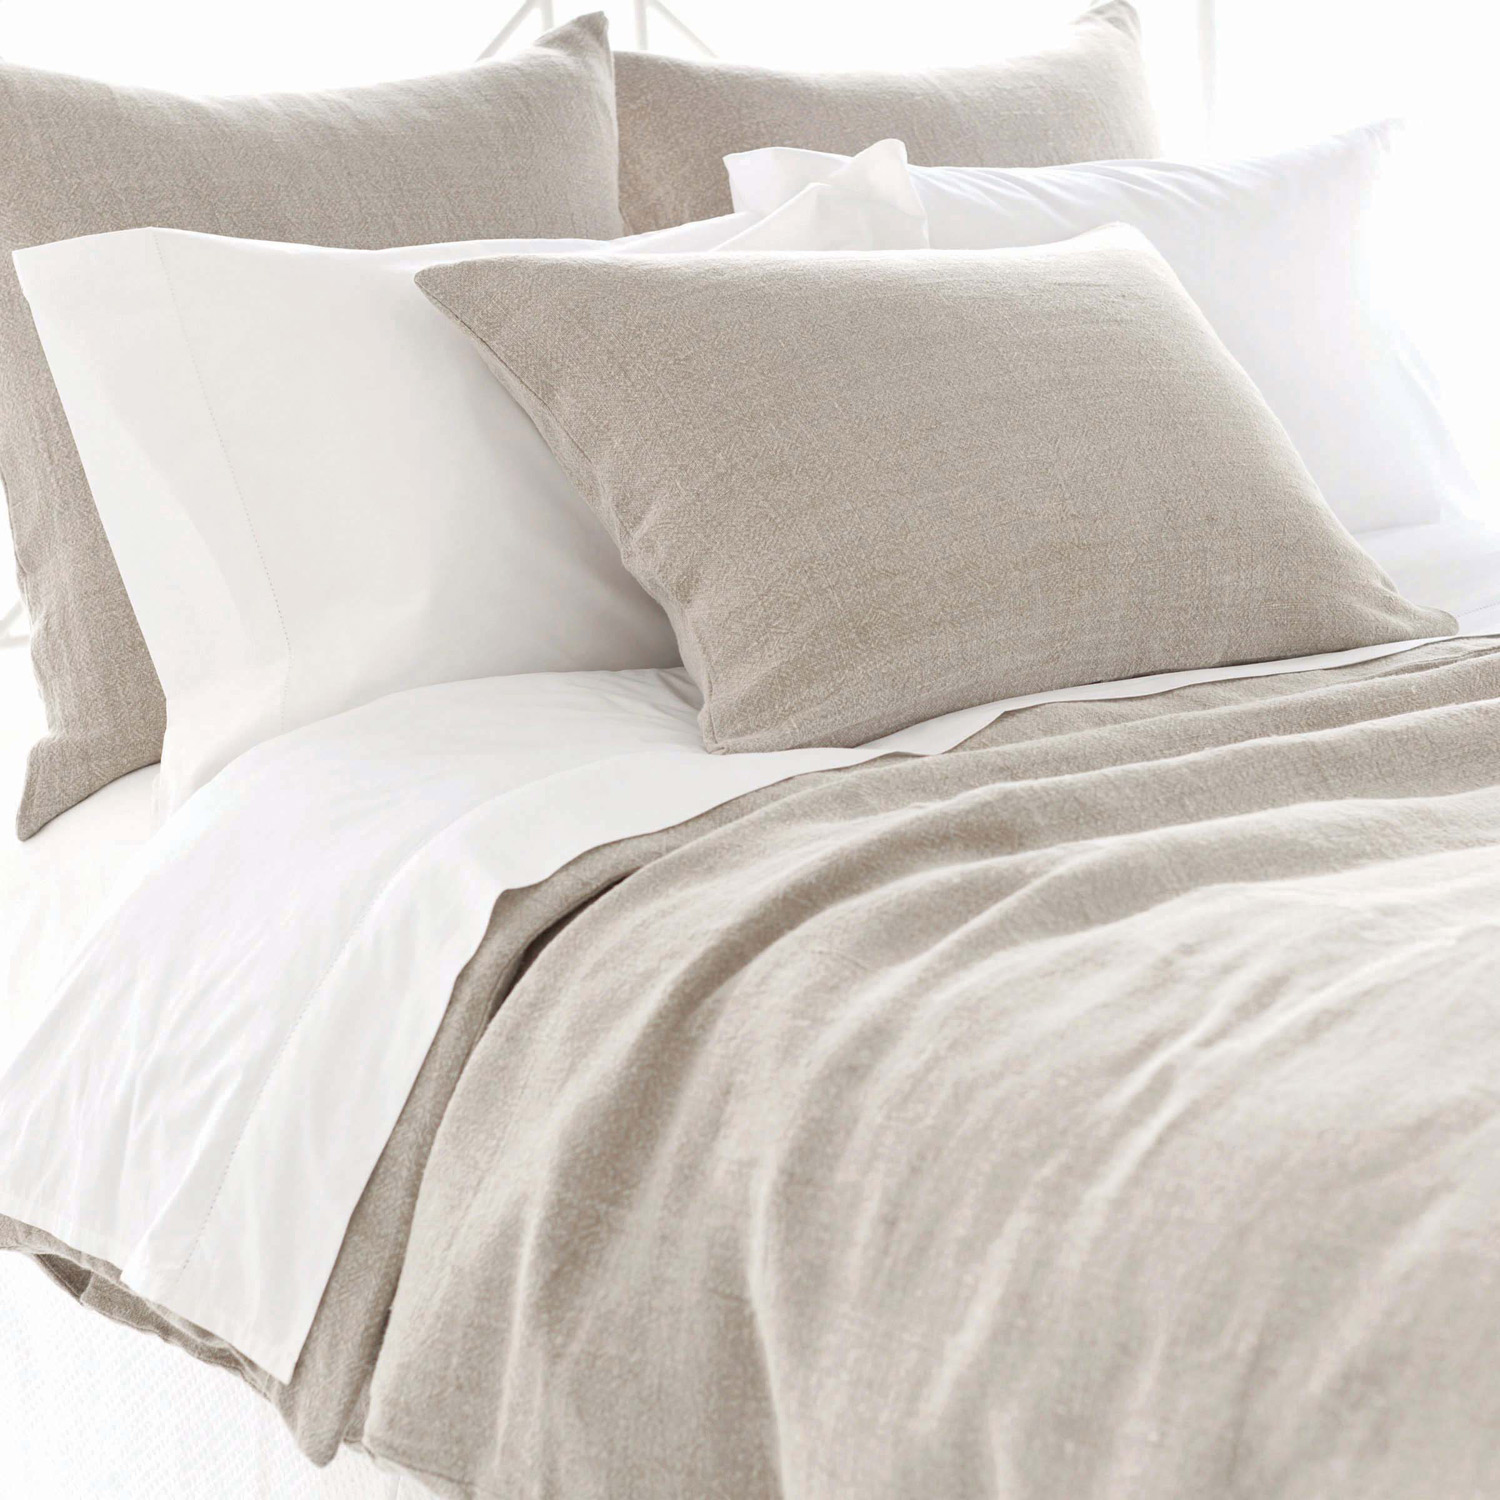 Charming Pine Cone Hill Duvet Covers And Linen Duvets For Lovely Bed Ideas